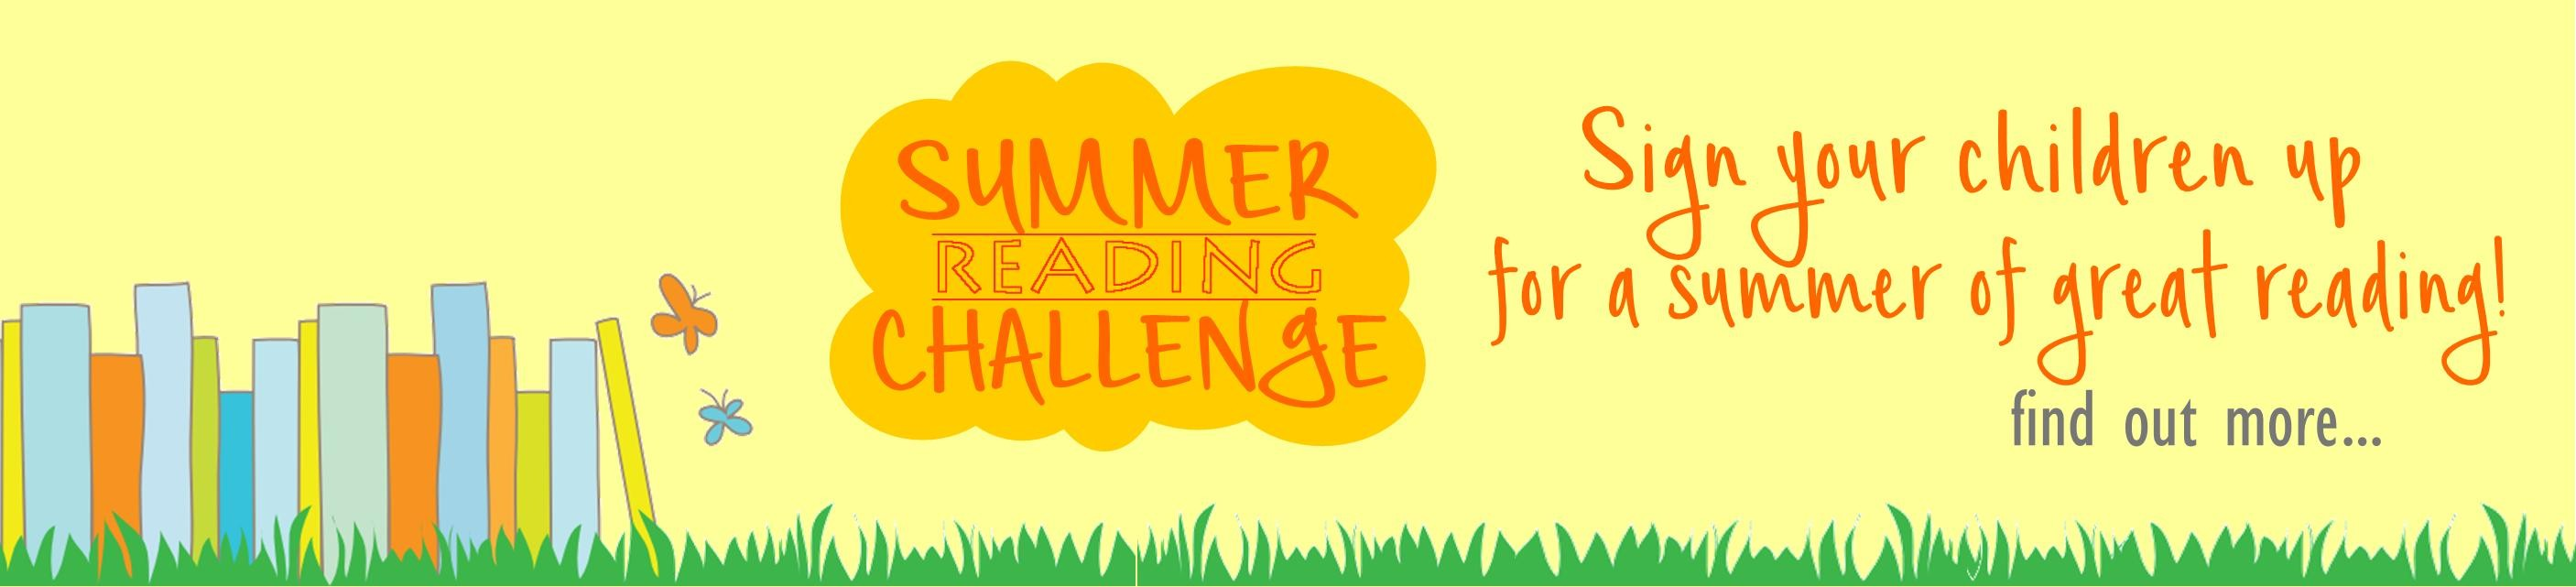 Our annual Summer Reading Challenge is back!